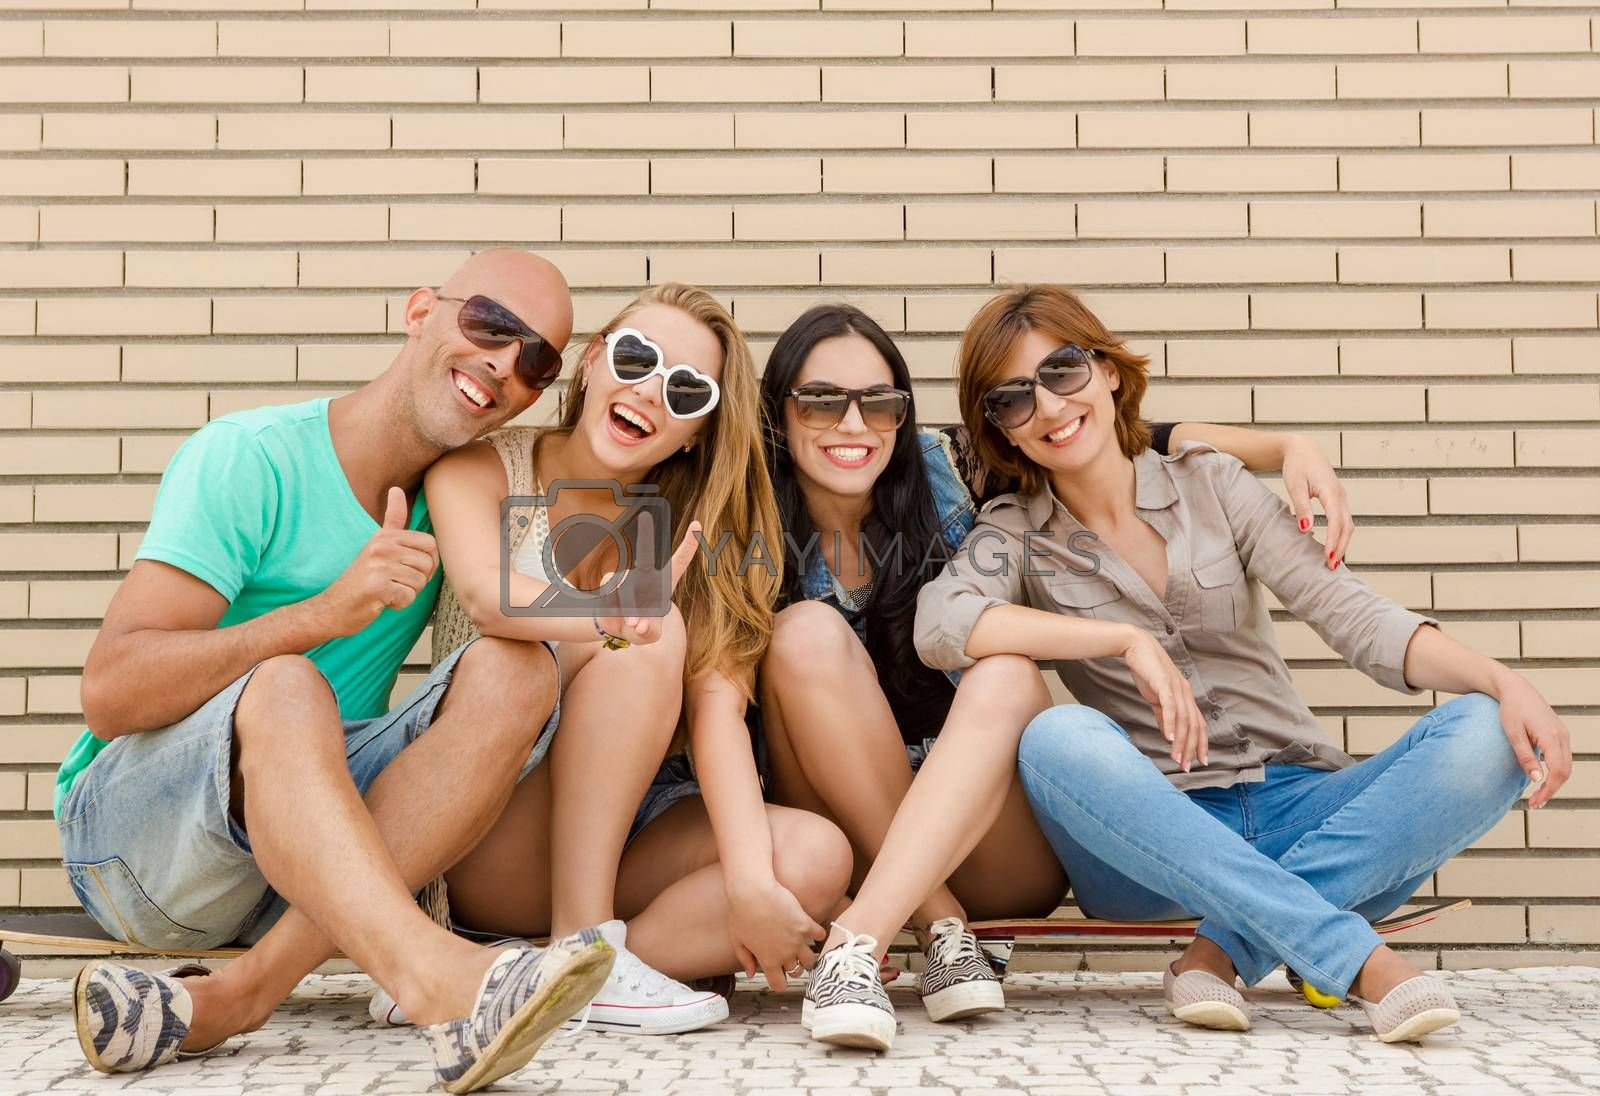 Group of friends posing in front of a brick wall